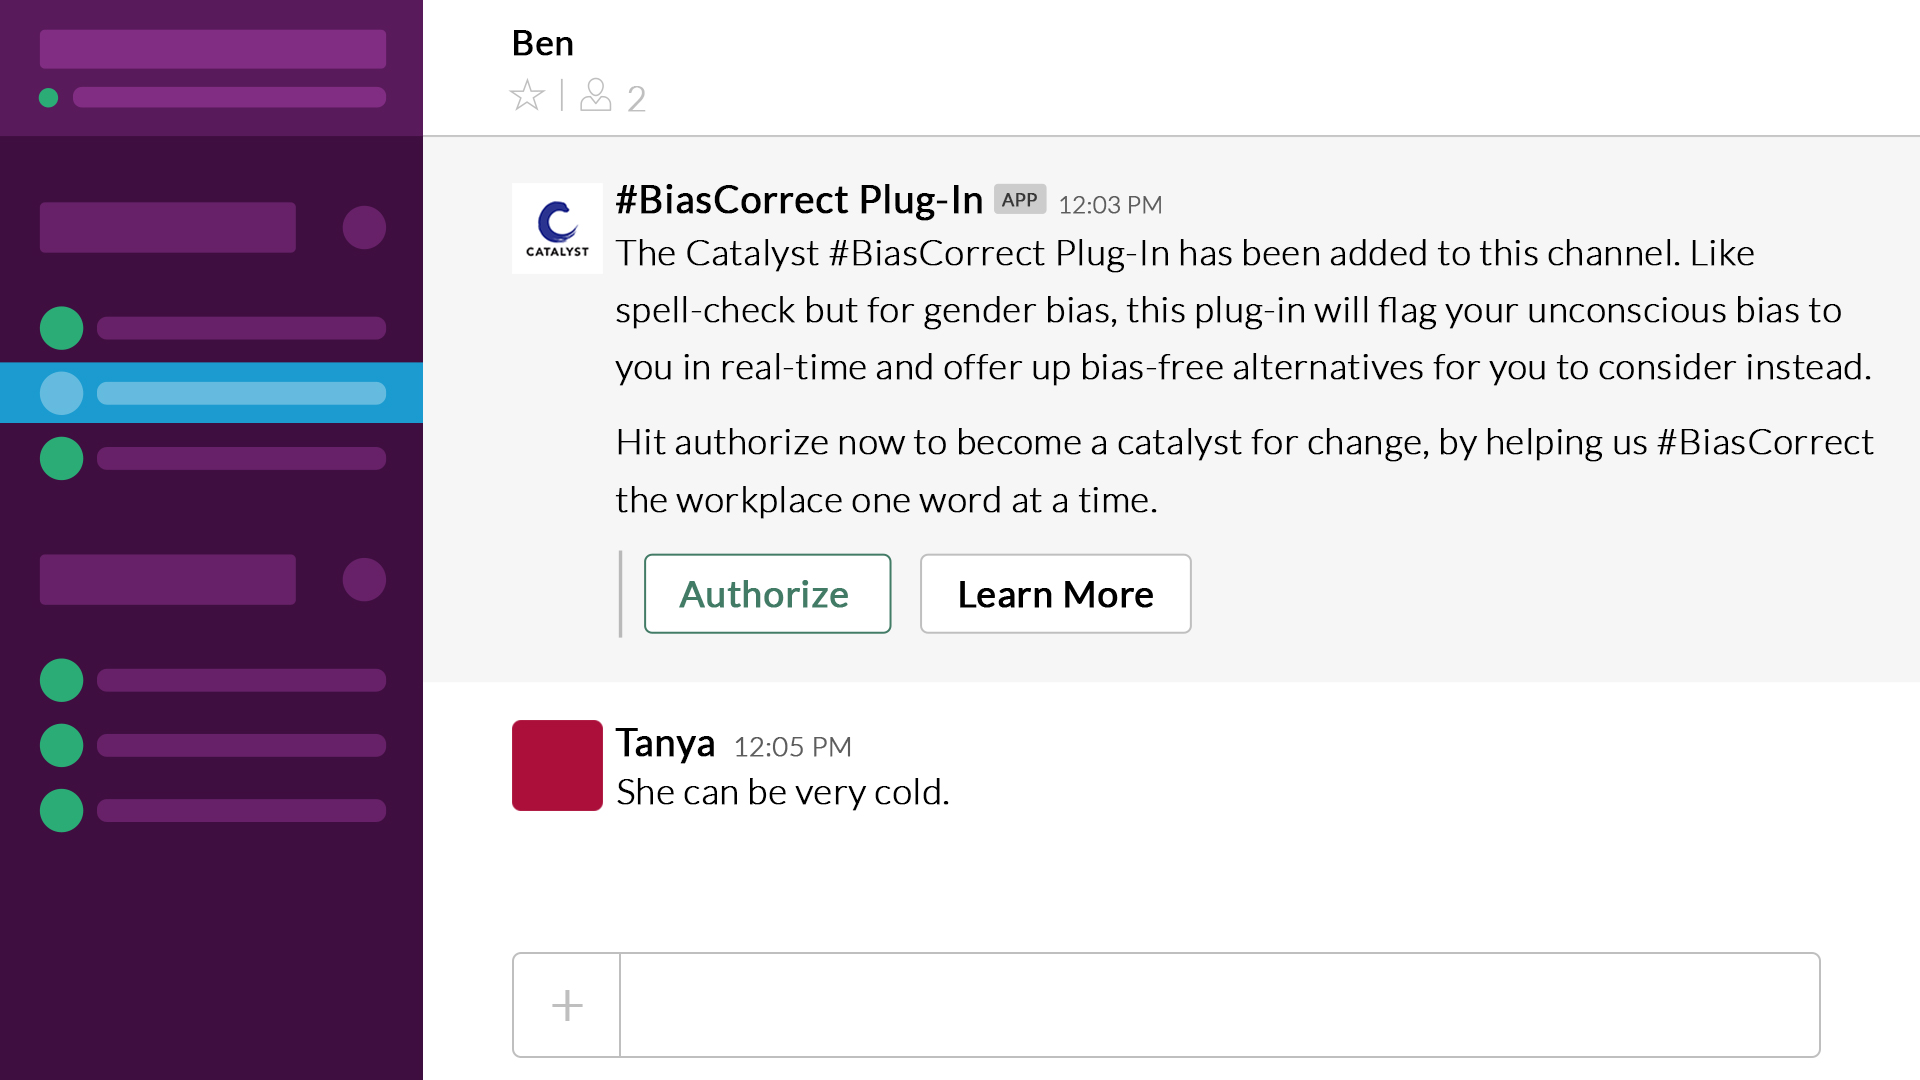 Image showing how to ignore or decline the corrective suggestion that the #BiasCorrect plug-in gives in the Slack app.